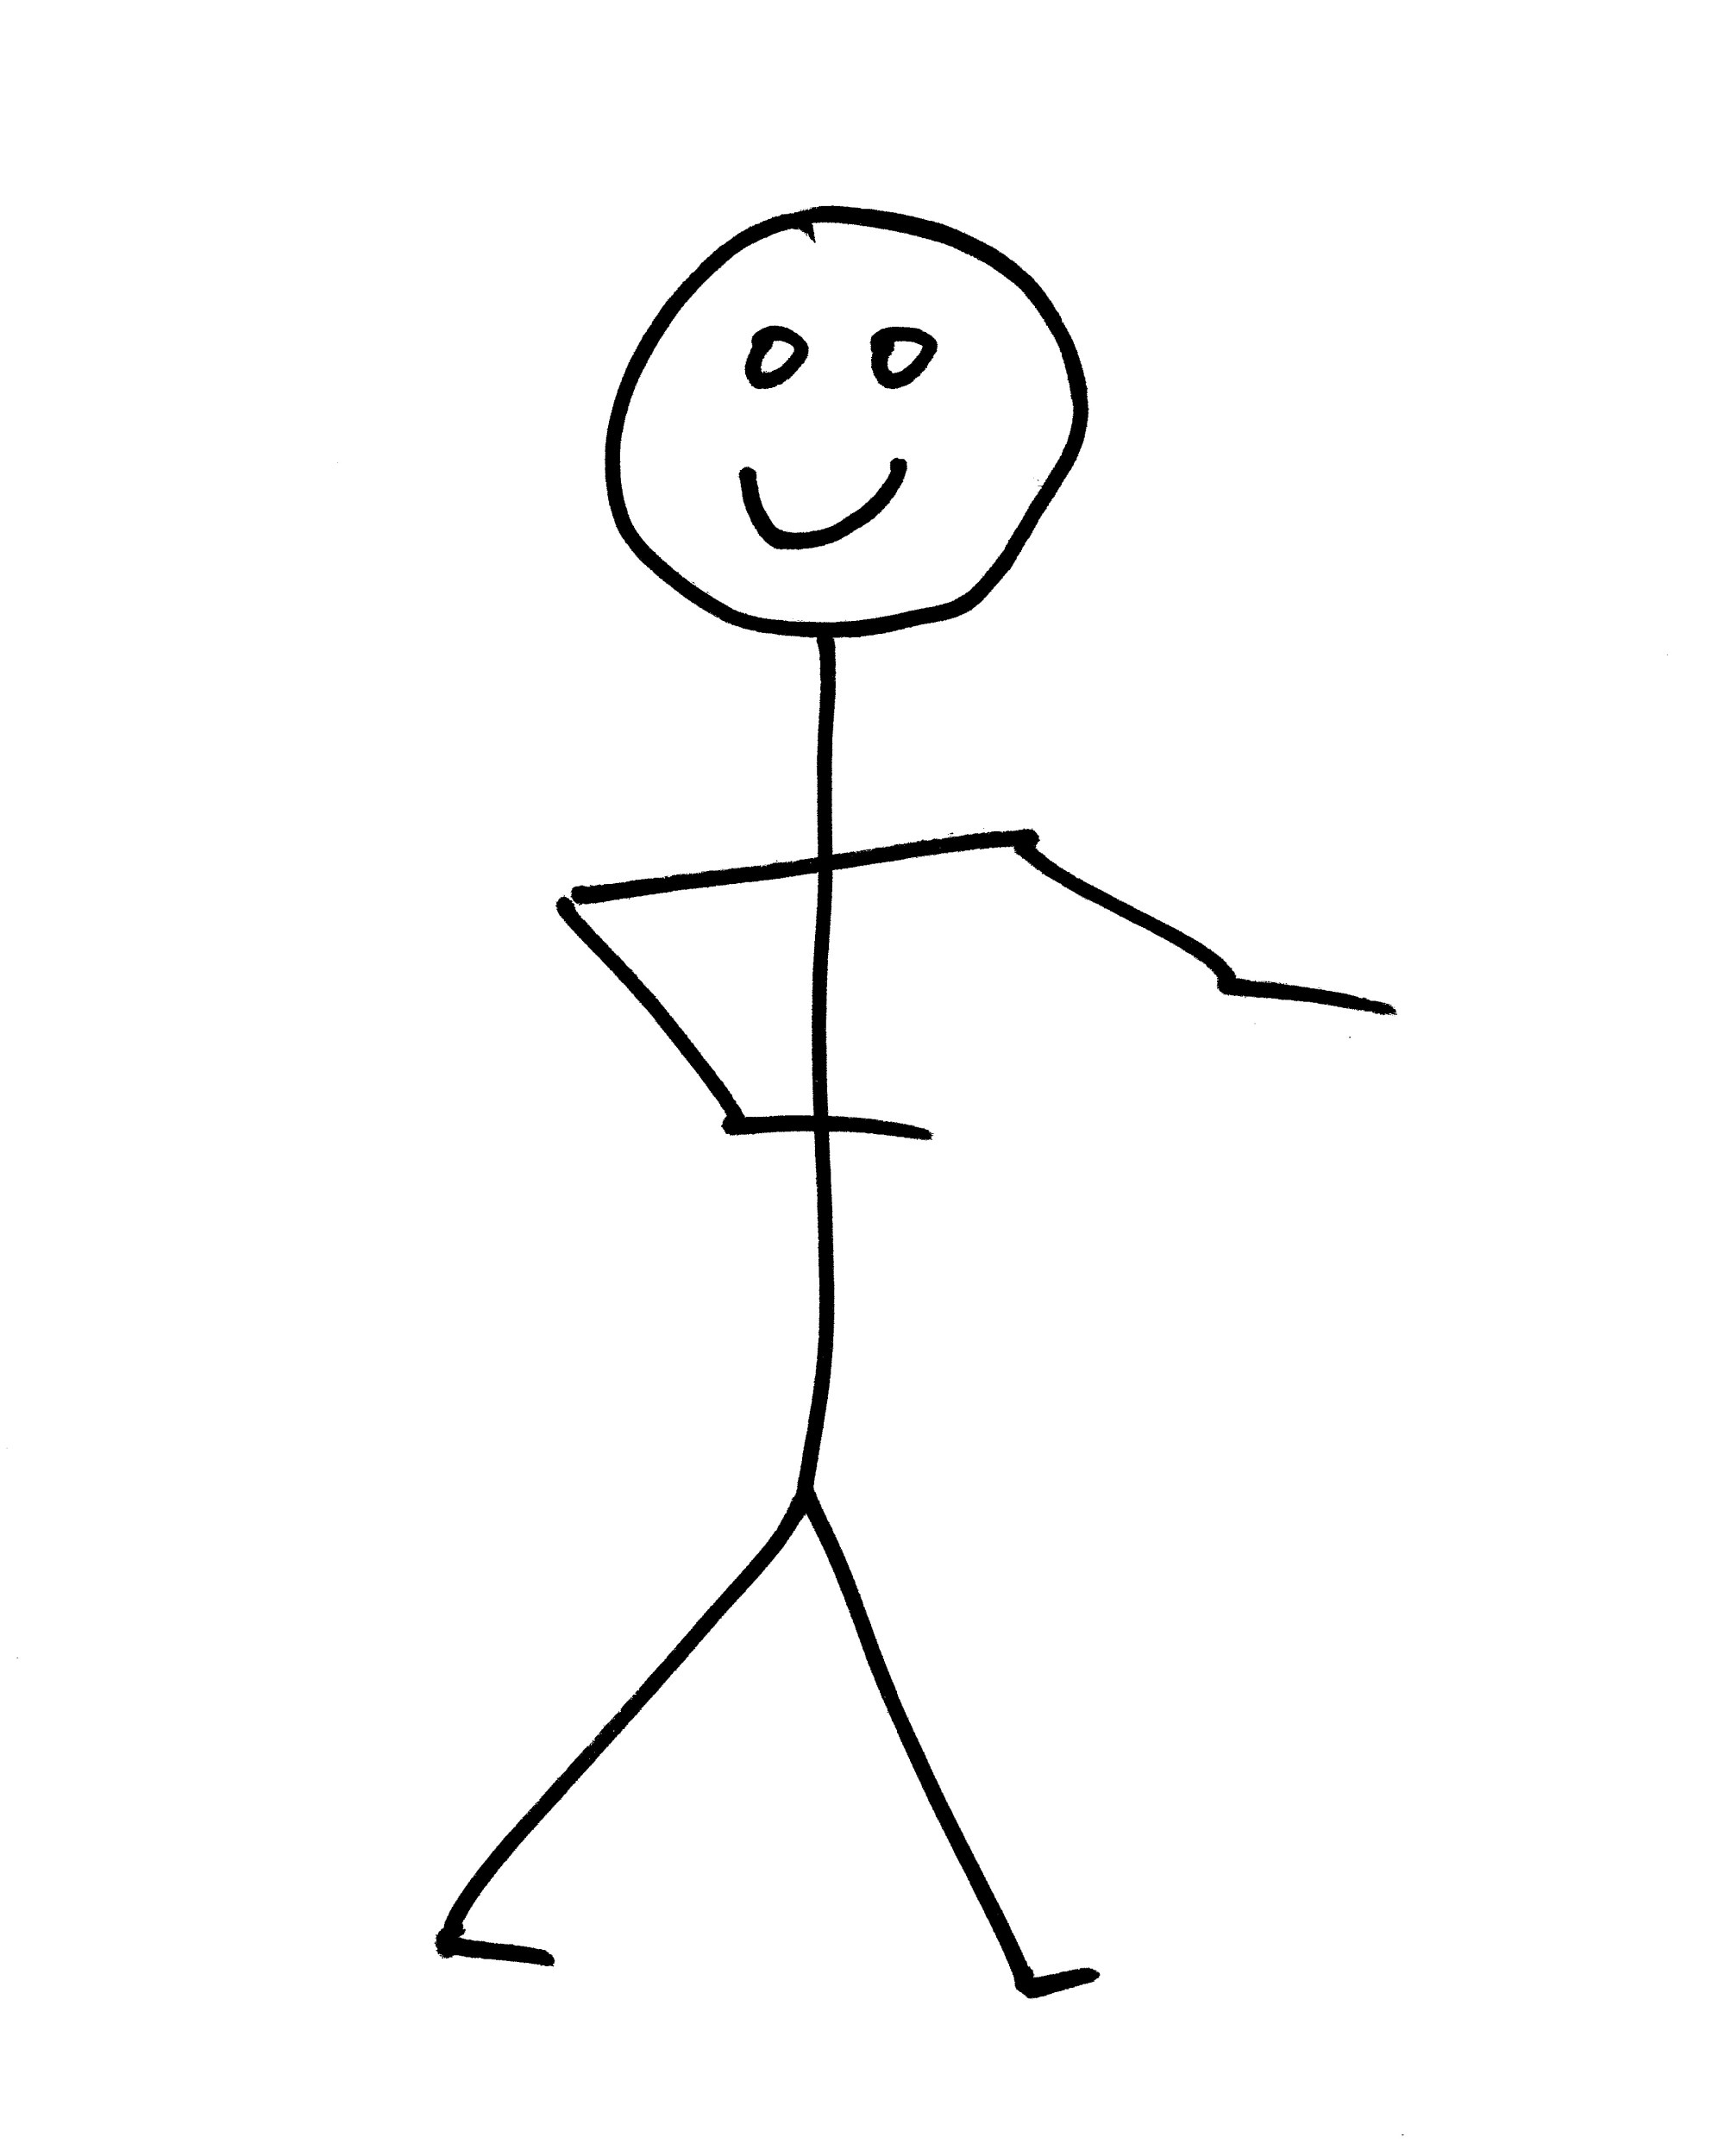 hight resolution of smiling stick figure person free high resolution clipart